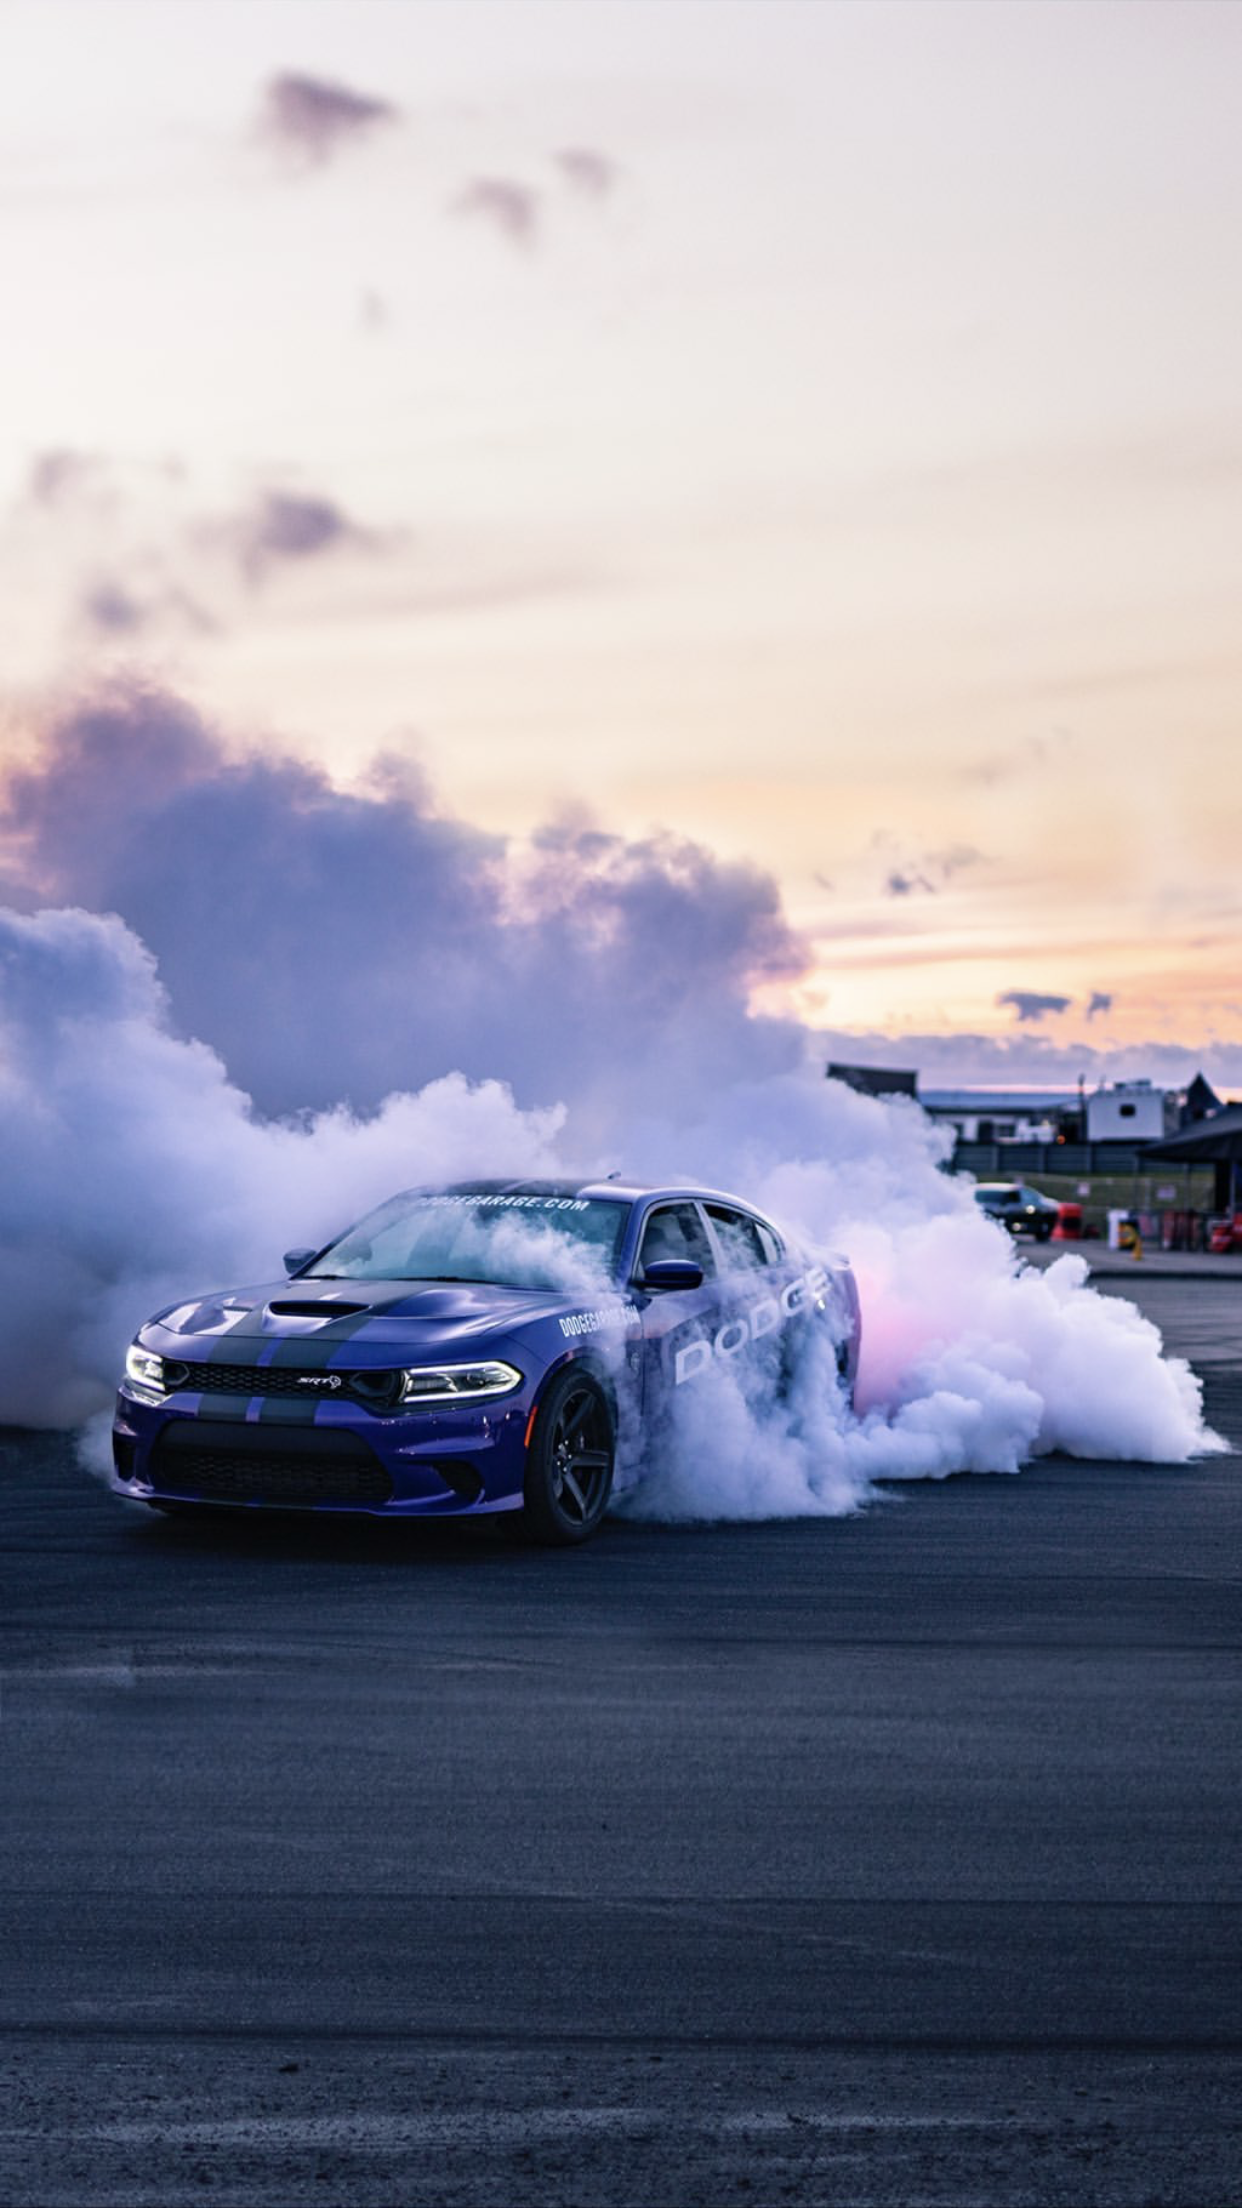 Dodge Race Car Wallpaper Roadkillnights Car Iphone Wallpaper Car Wallpapers Car